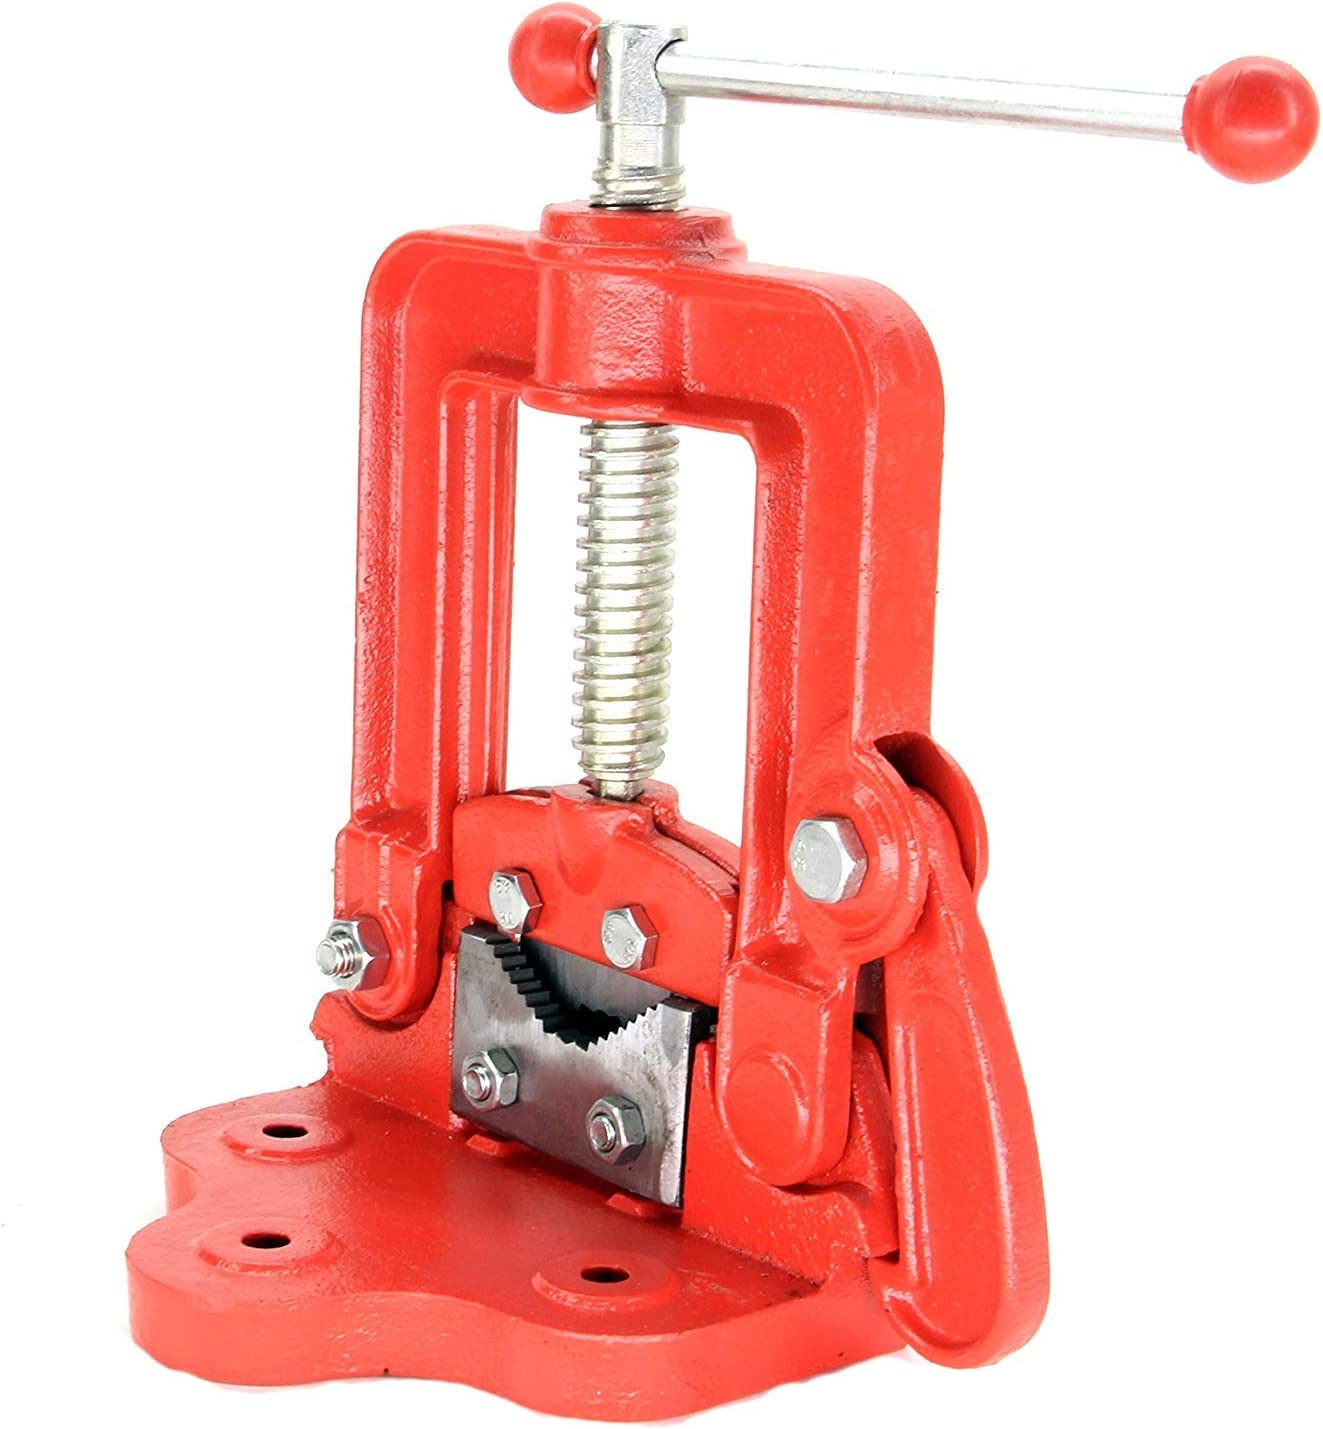 Shop-Tek 6-Inch Drill Press Vise Sold by Ucostore Only